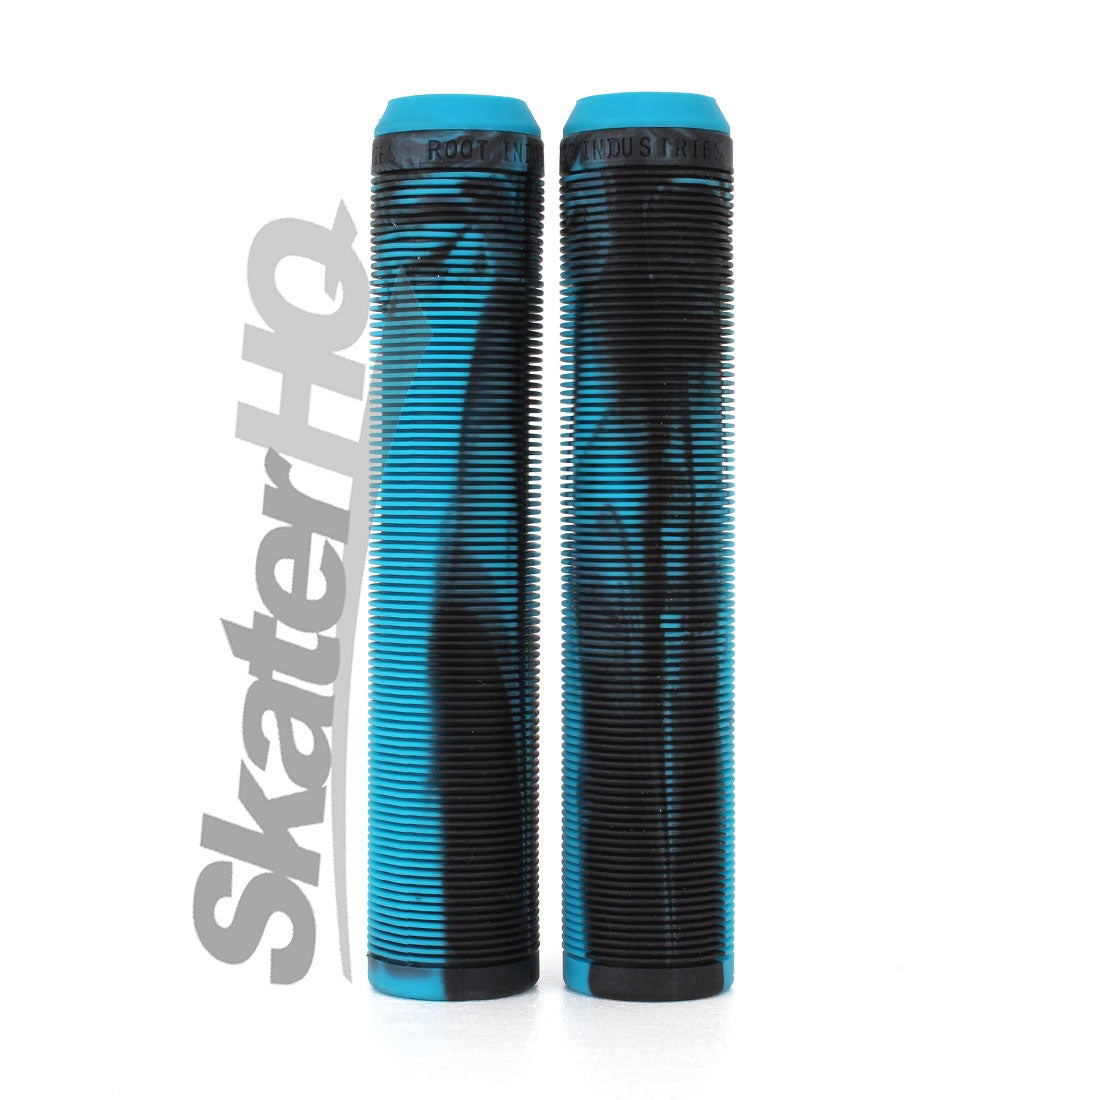 Root Industries Mixed Grips - Teal/Black